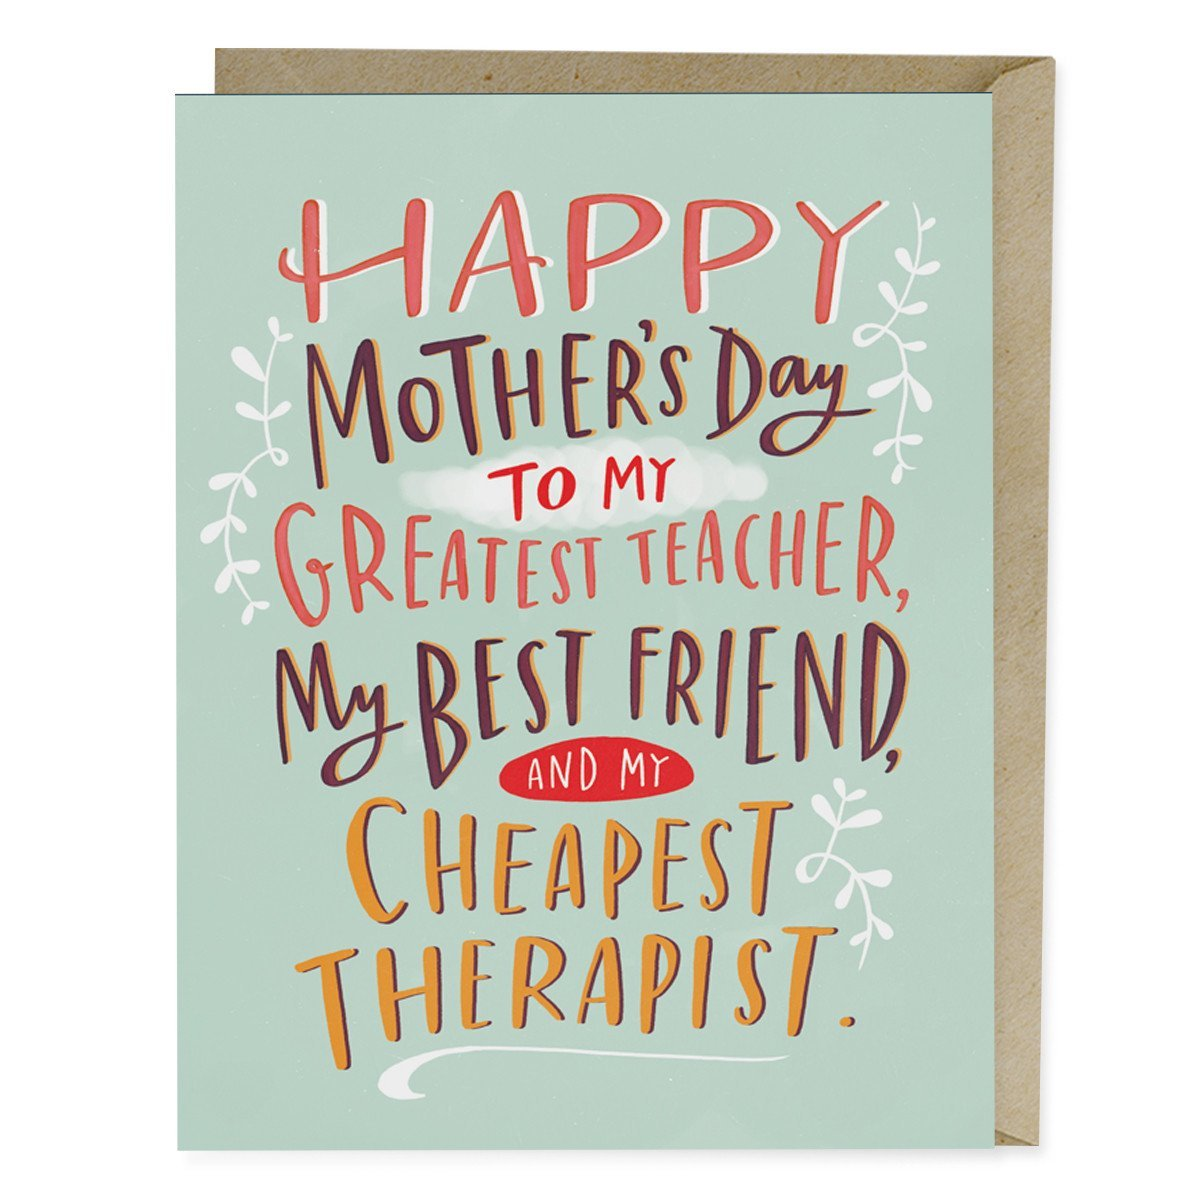 cheapest therapist mother s day card emily mcdowell studio